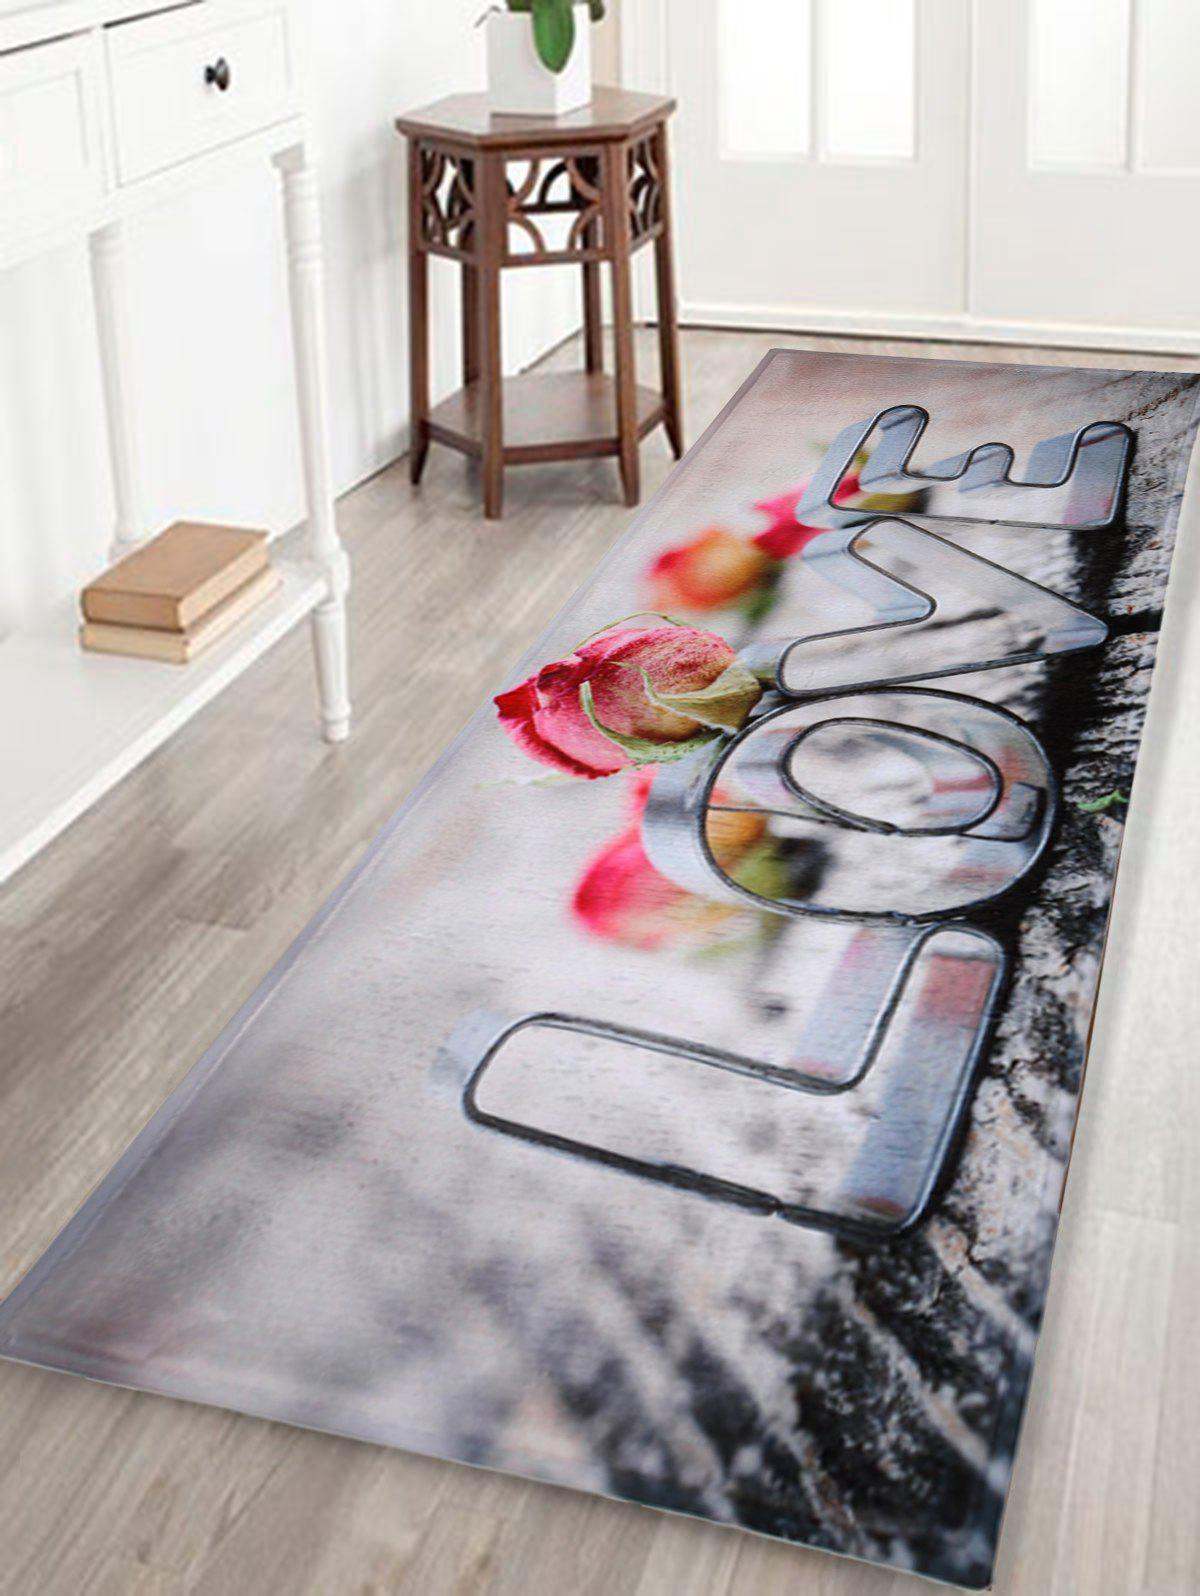 Coral Velvet Love Letter Home Entrance RugHOME<br><br>Size: W24 INCH * L71 INCH; Color: COLORMIX; Products Type: Bath rugs; Materials: Coral FLeece; Pattern: Letter; Style: Trendy; Shape: Rectangle; Package Contents: 1 x Rug;